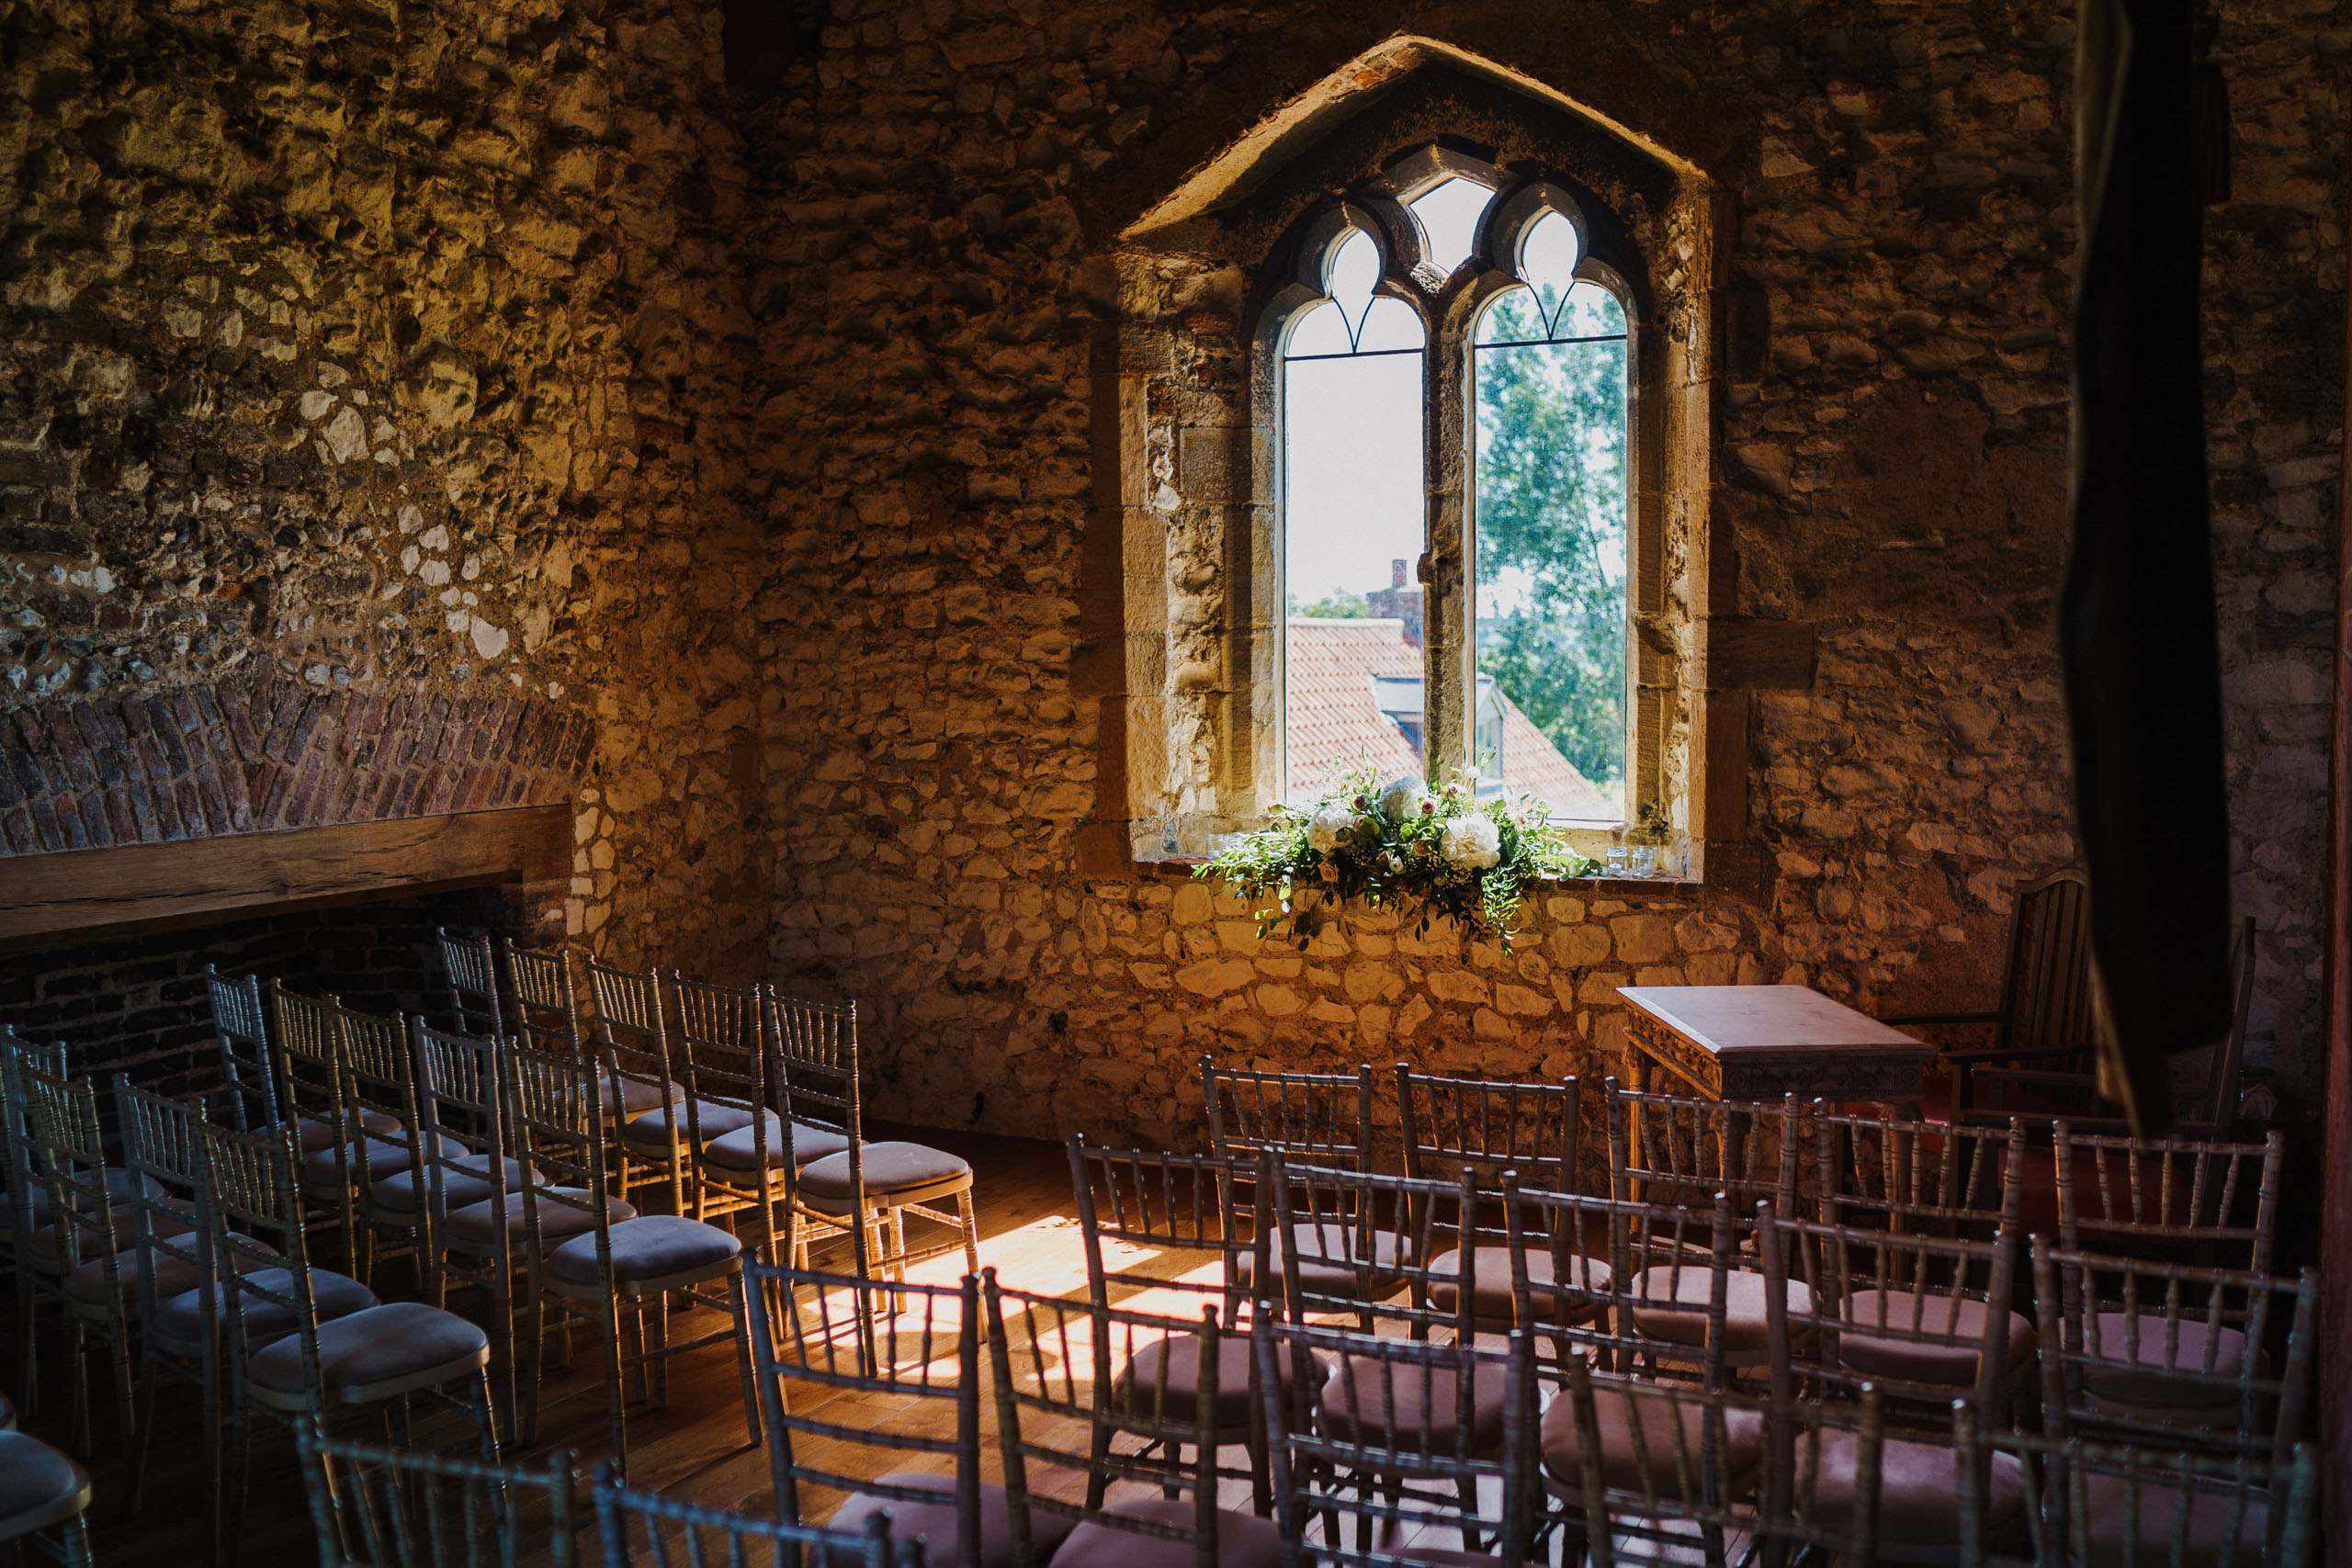 The ceremony room at Pentney Abbey